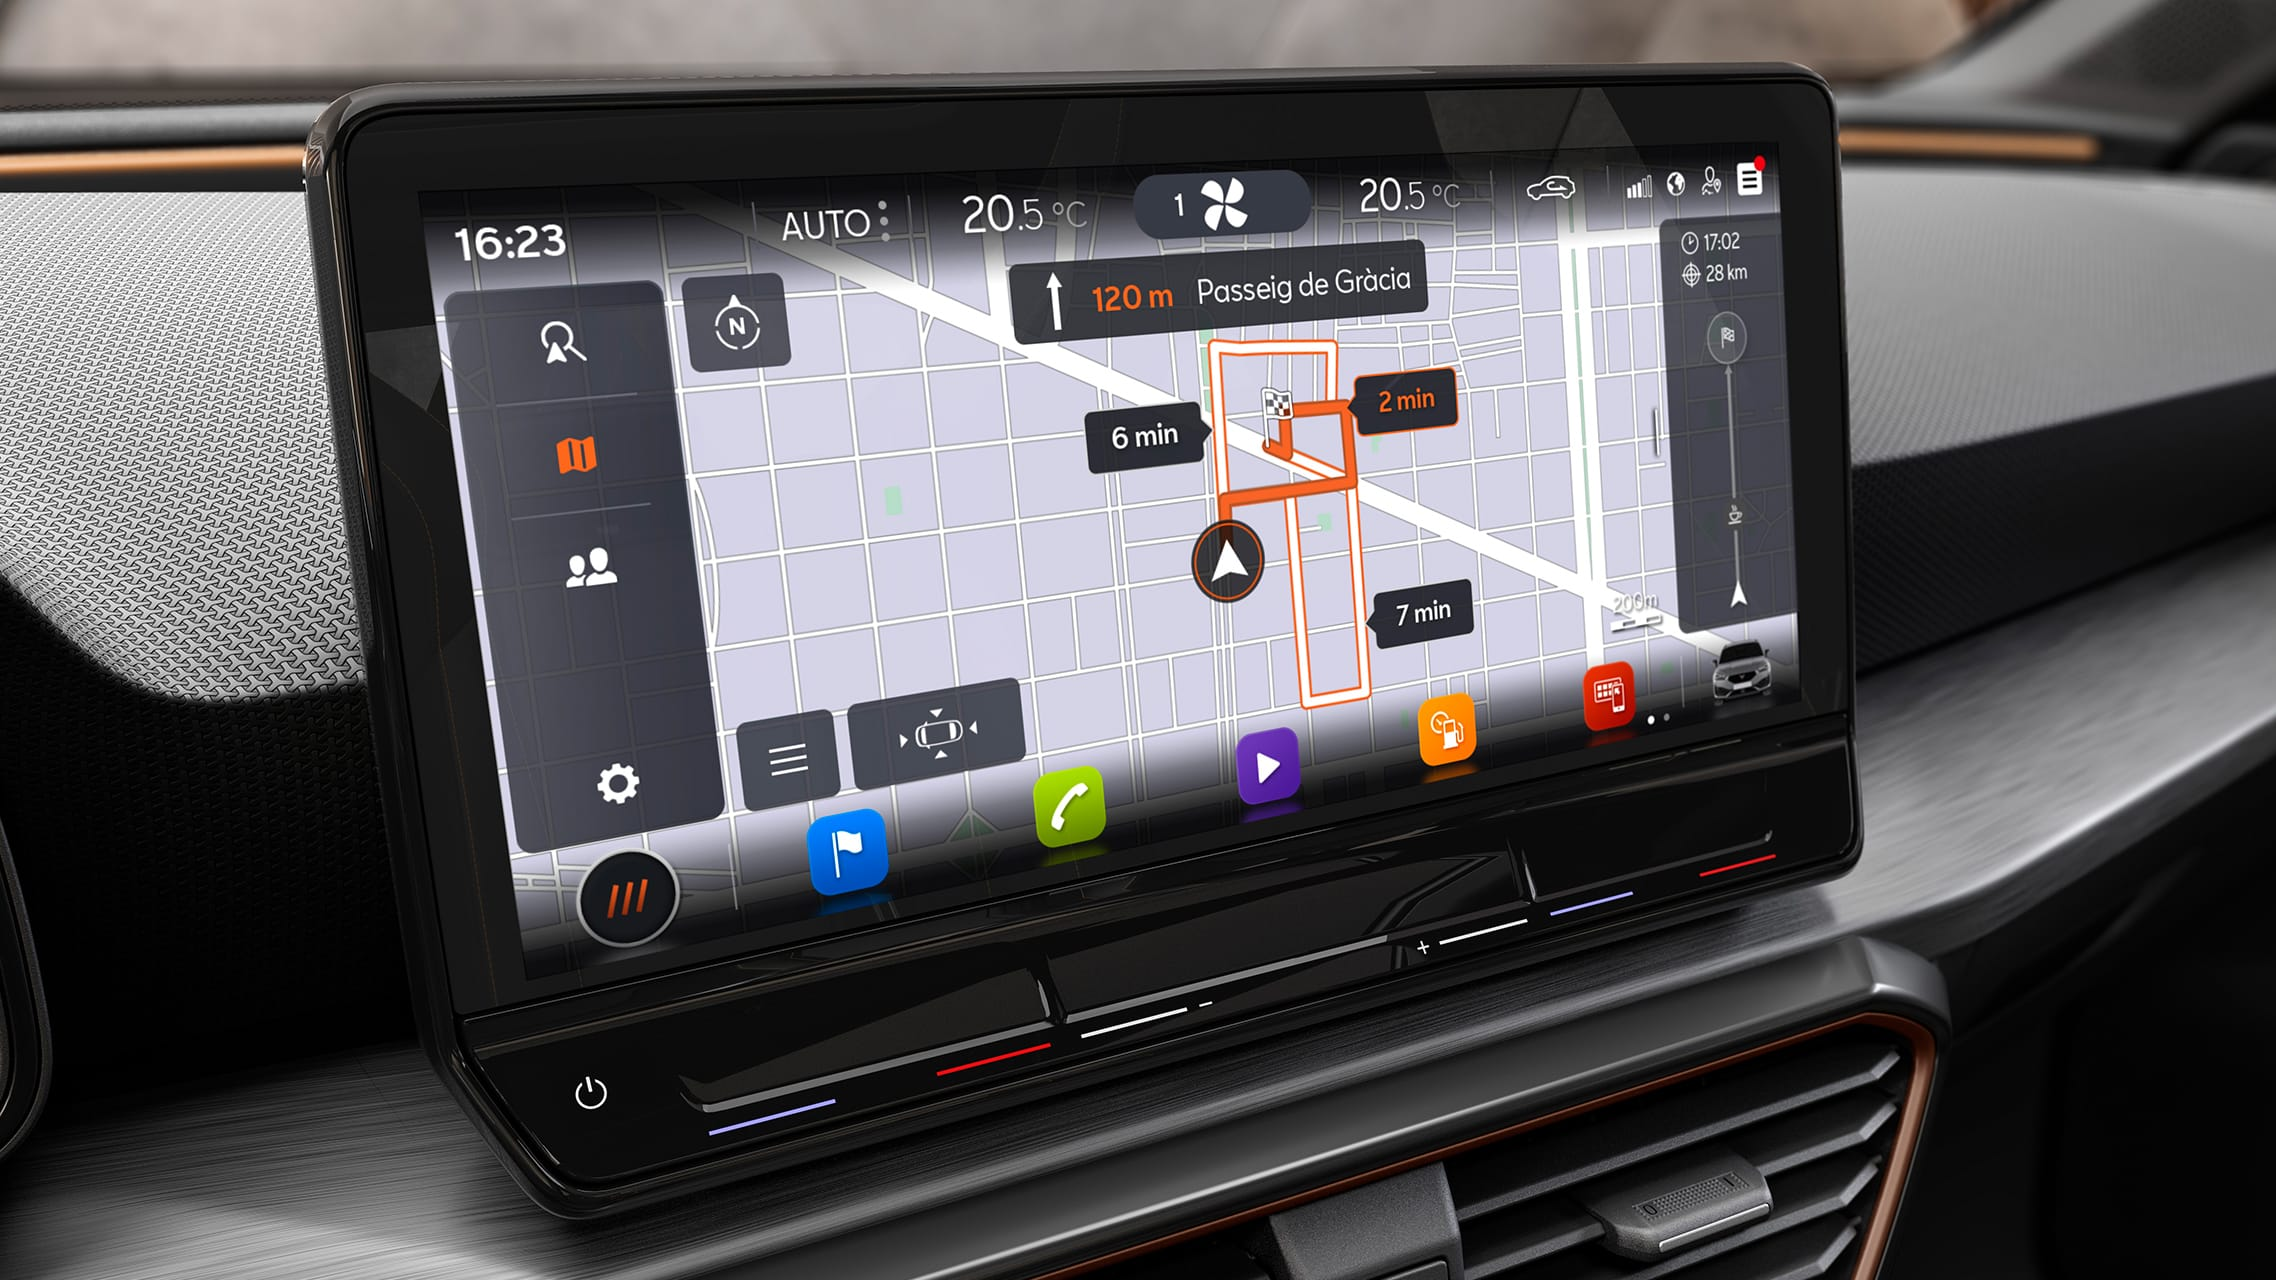 Real-time traffic GPS of the CUPRA Leon five doors ehybrid Compact Sports Car. Interior view